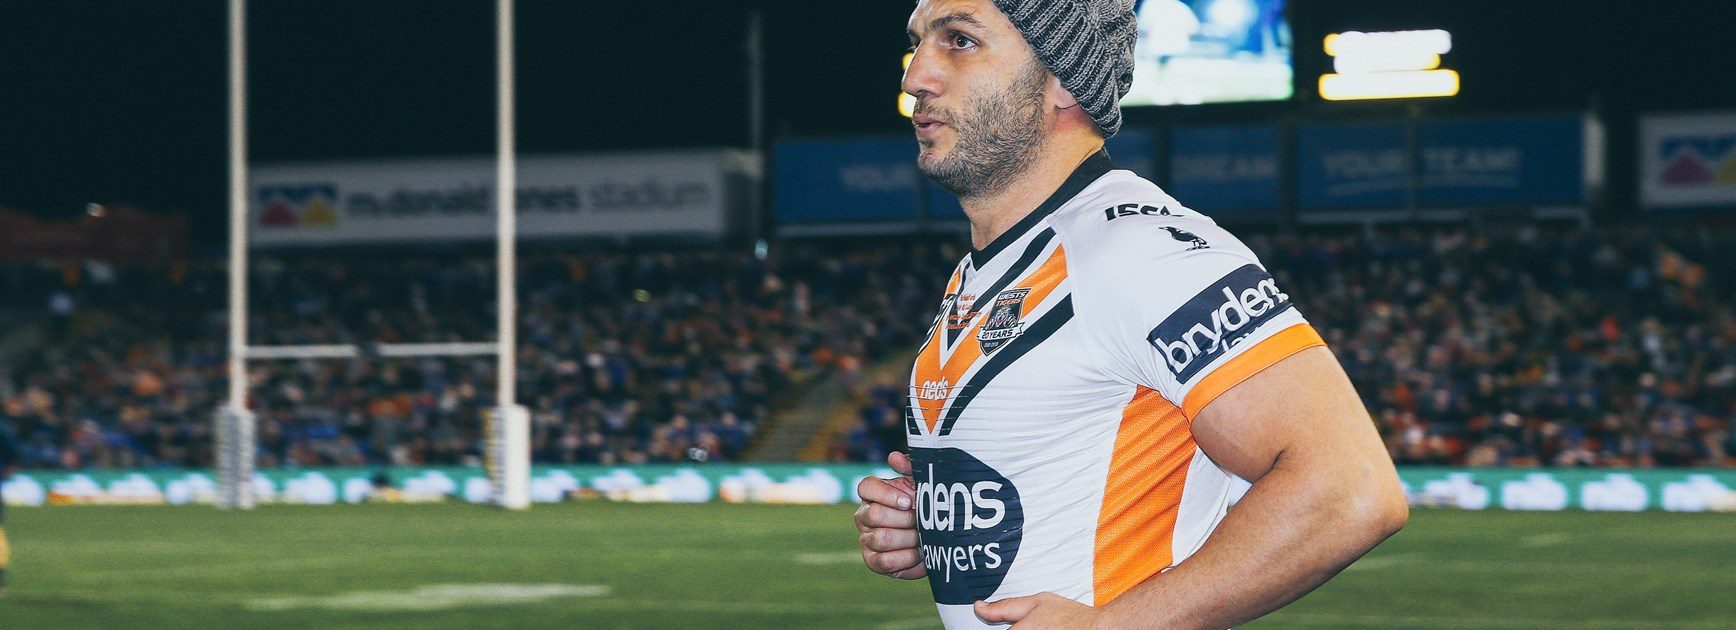 NRL Beanie For Brain Cancer Round 2019 Raises $3.1 Million